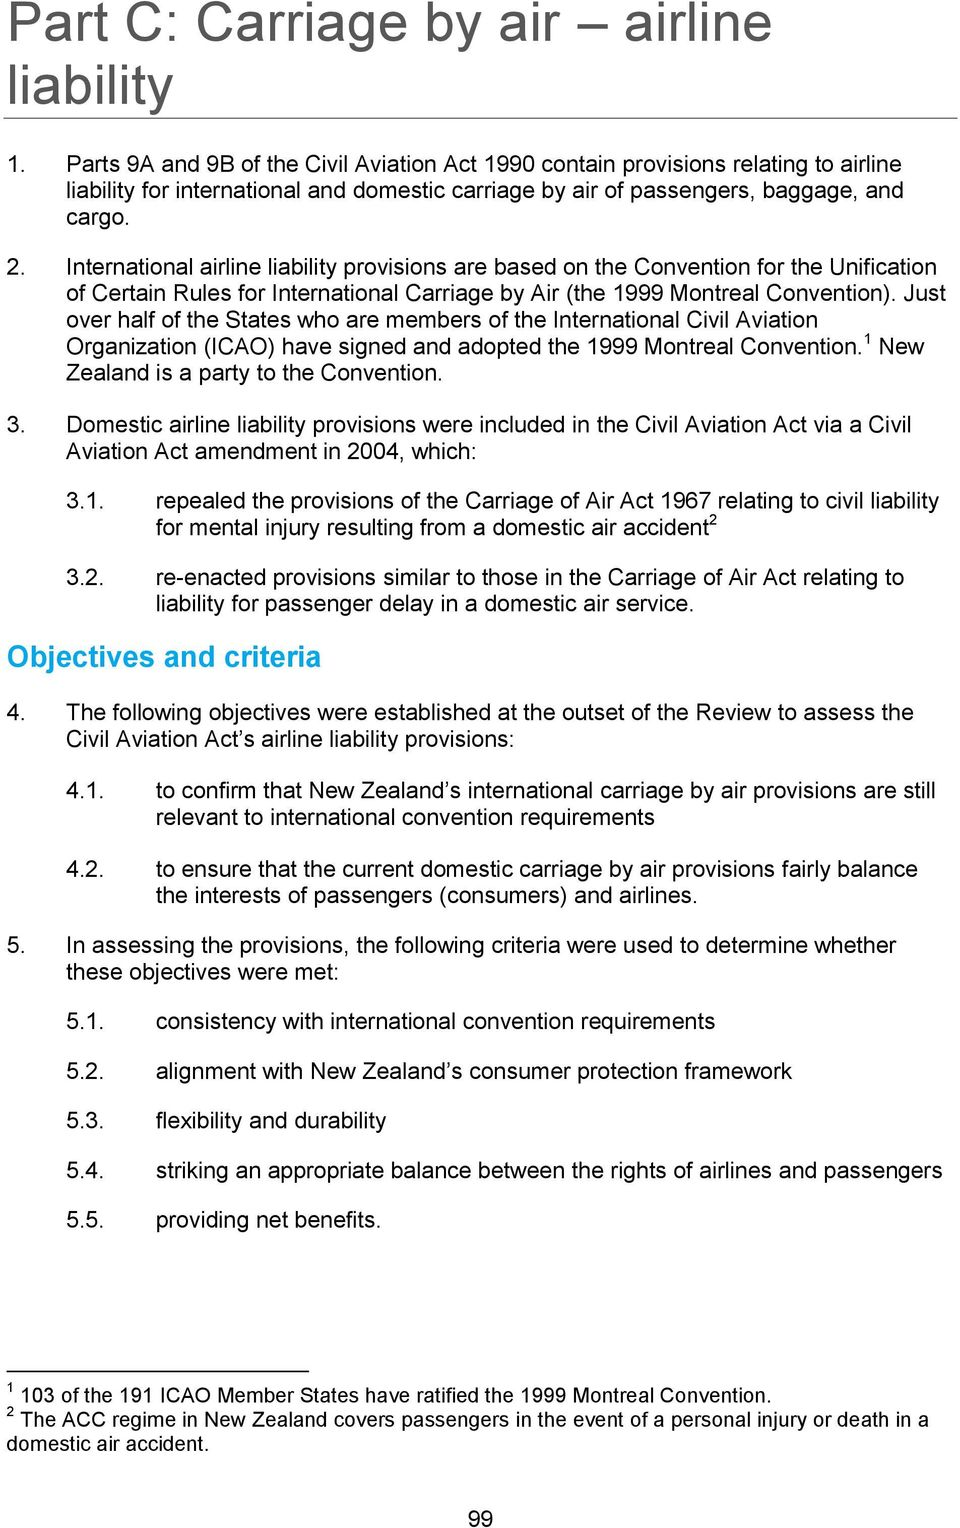 International airline liability provisions are based on the Convention for the Unification of Certain Rules for International Carriage by Air (the 1999 Montreal Convention).